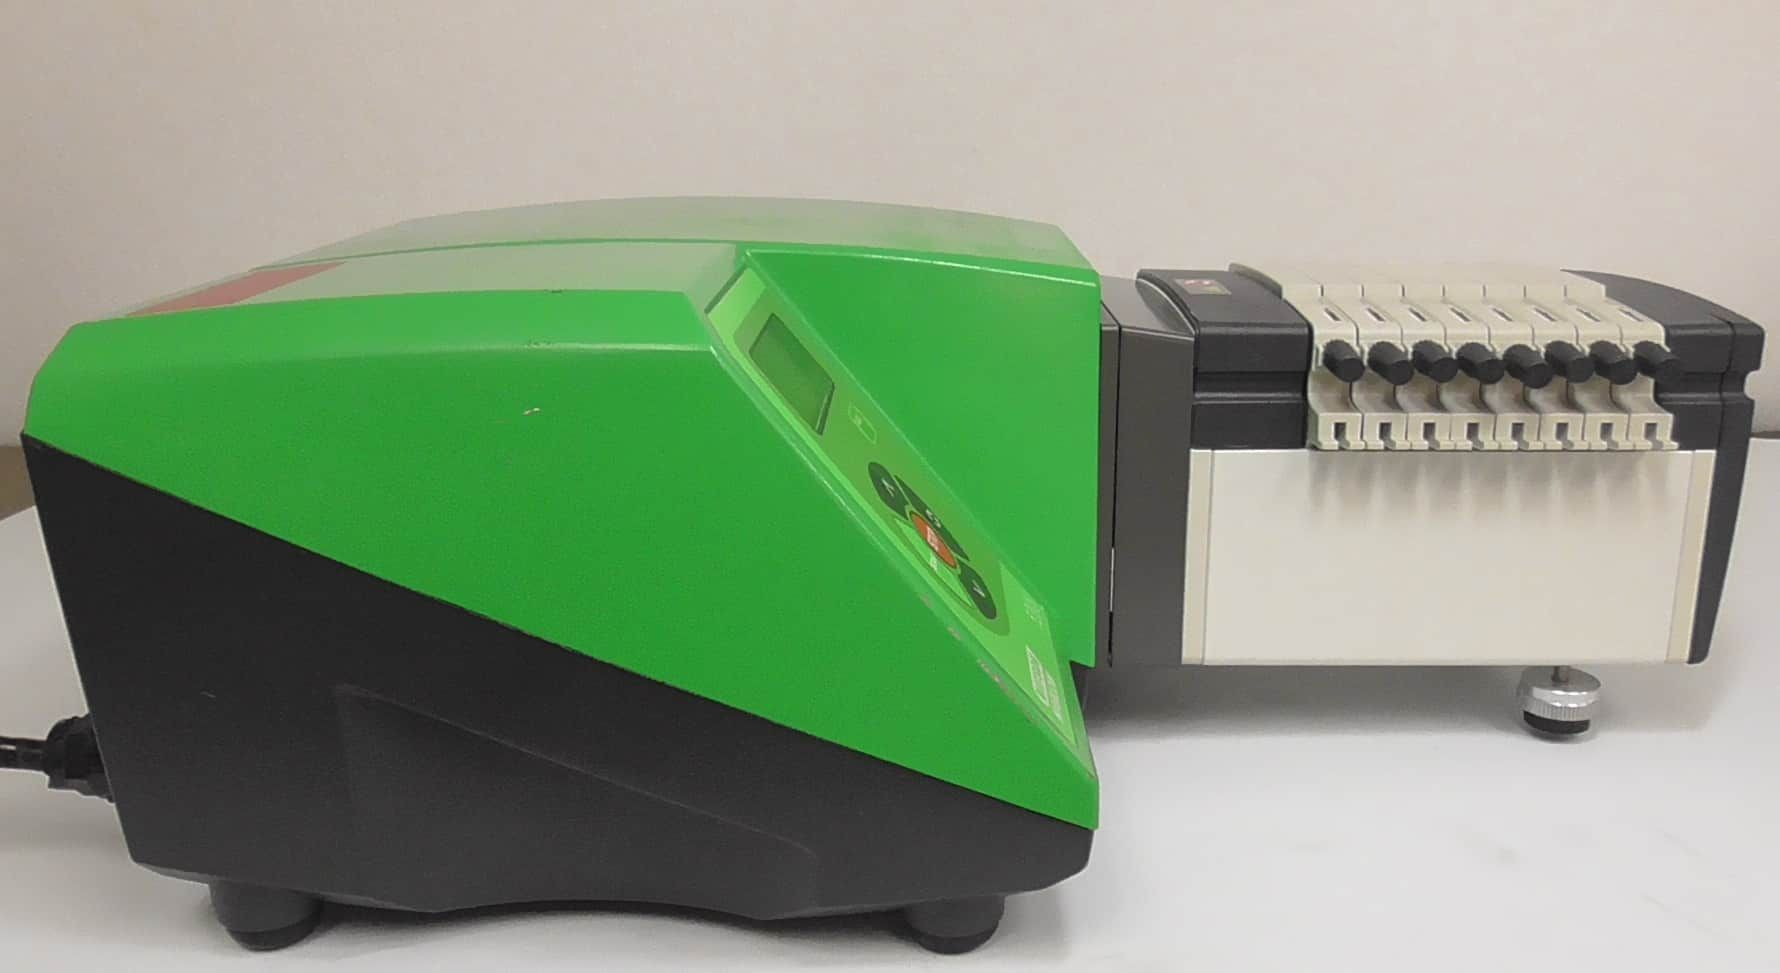 Watson Marlow 520 SR Peristaltic Pump with 205CA8 8 Channel Roller